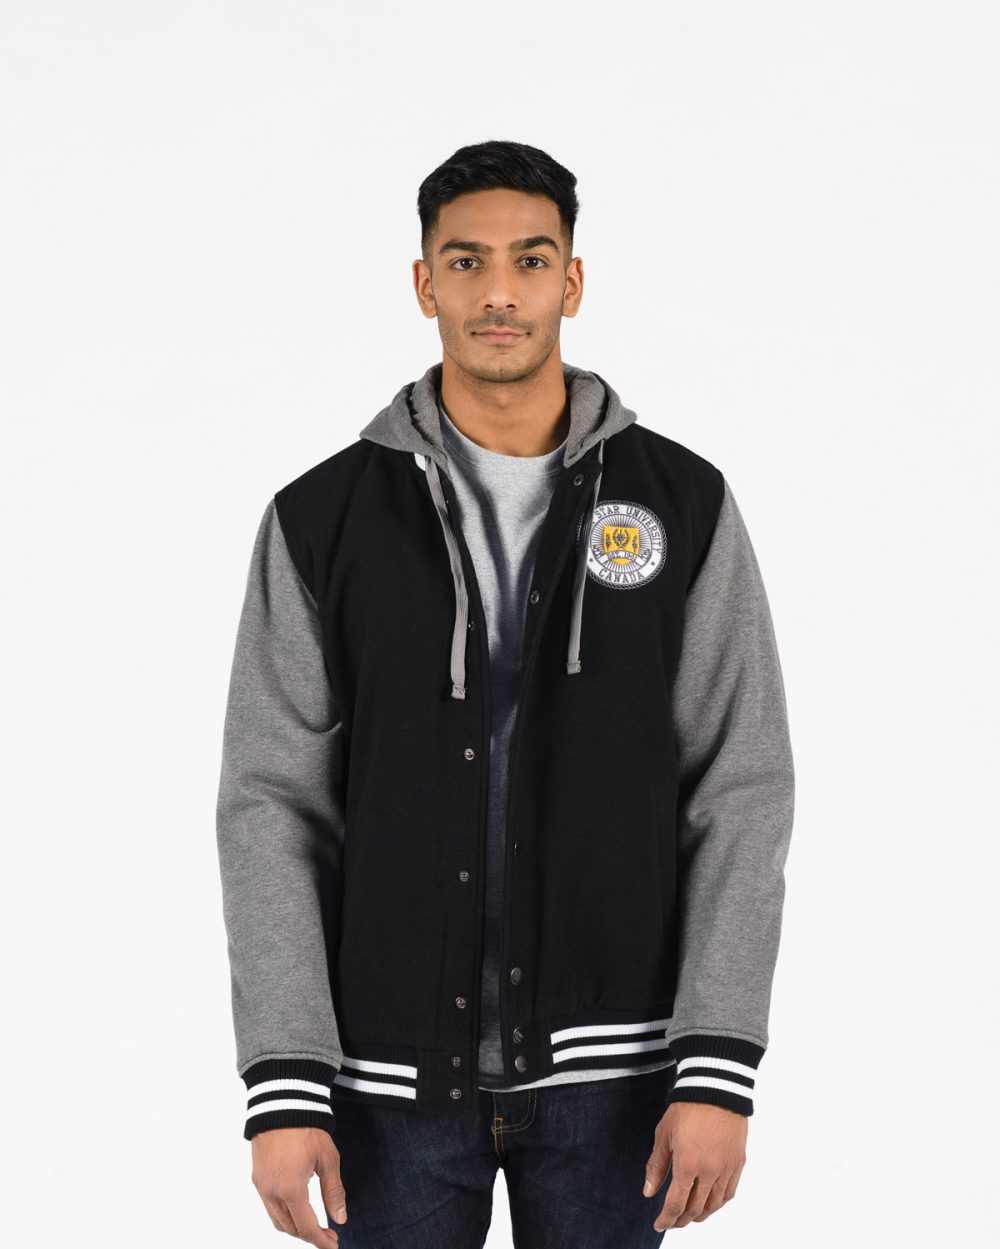 Insulated Letterman Jacket 518 Black with Charcoal sleeves on male model front view.